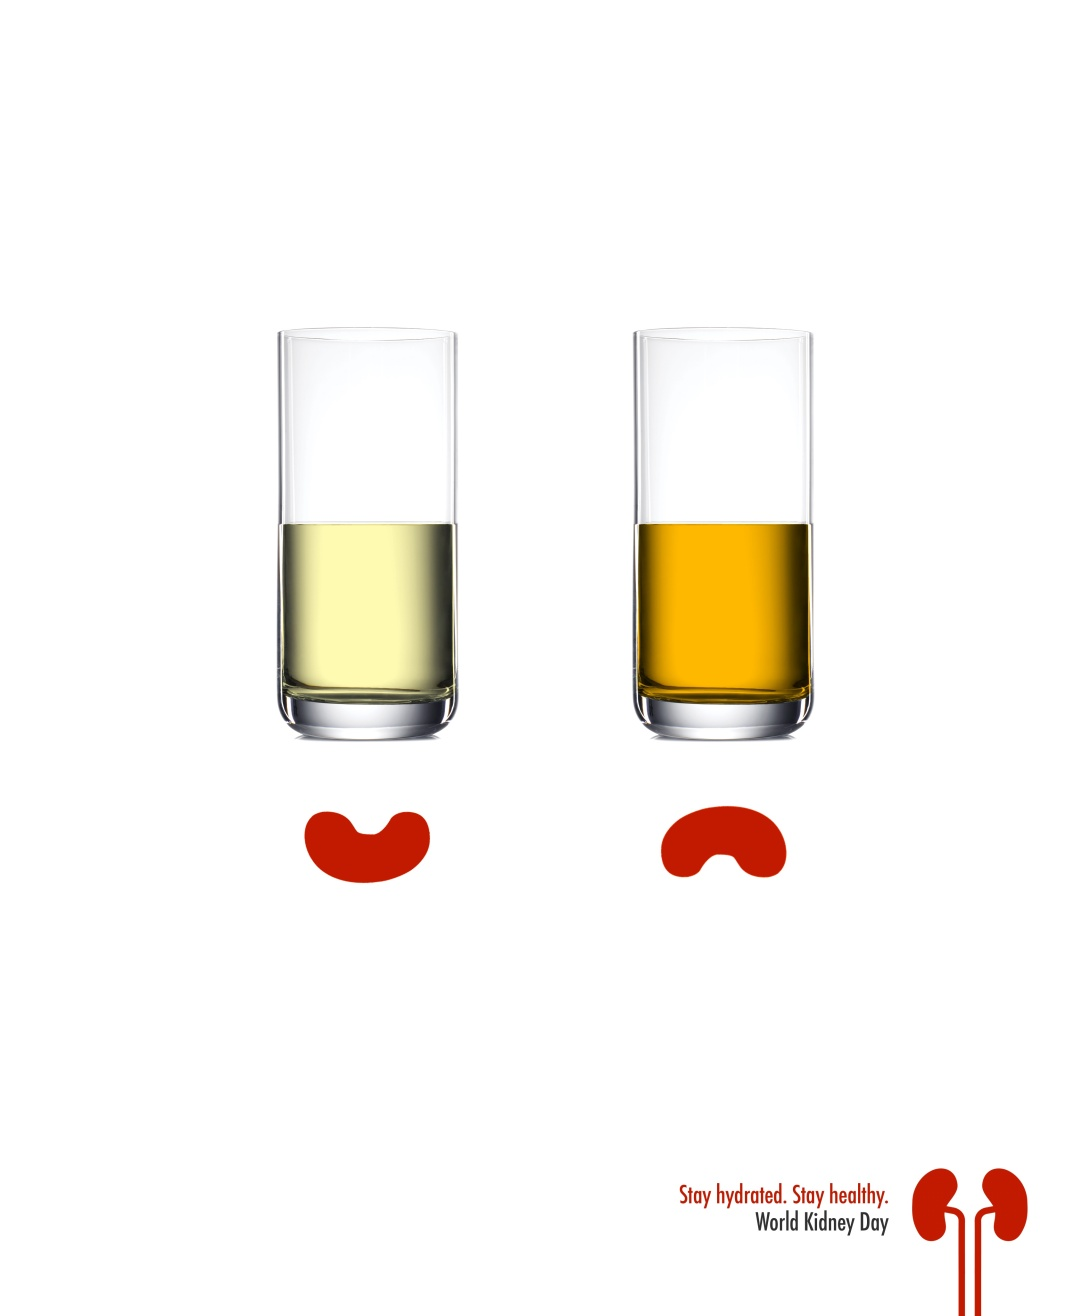 advertising concept for World Kidney Day - stay hydrated